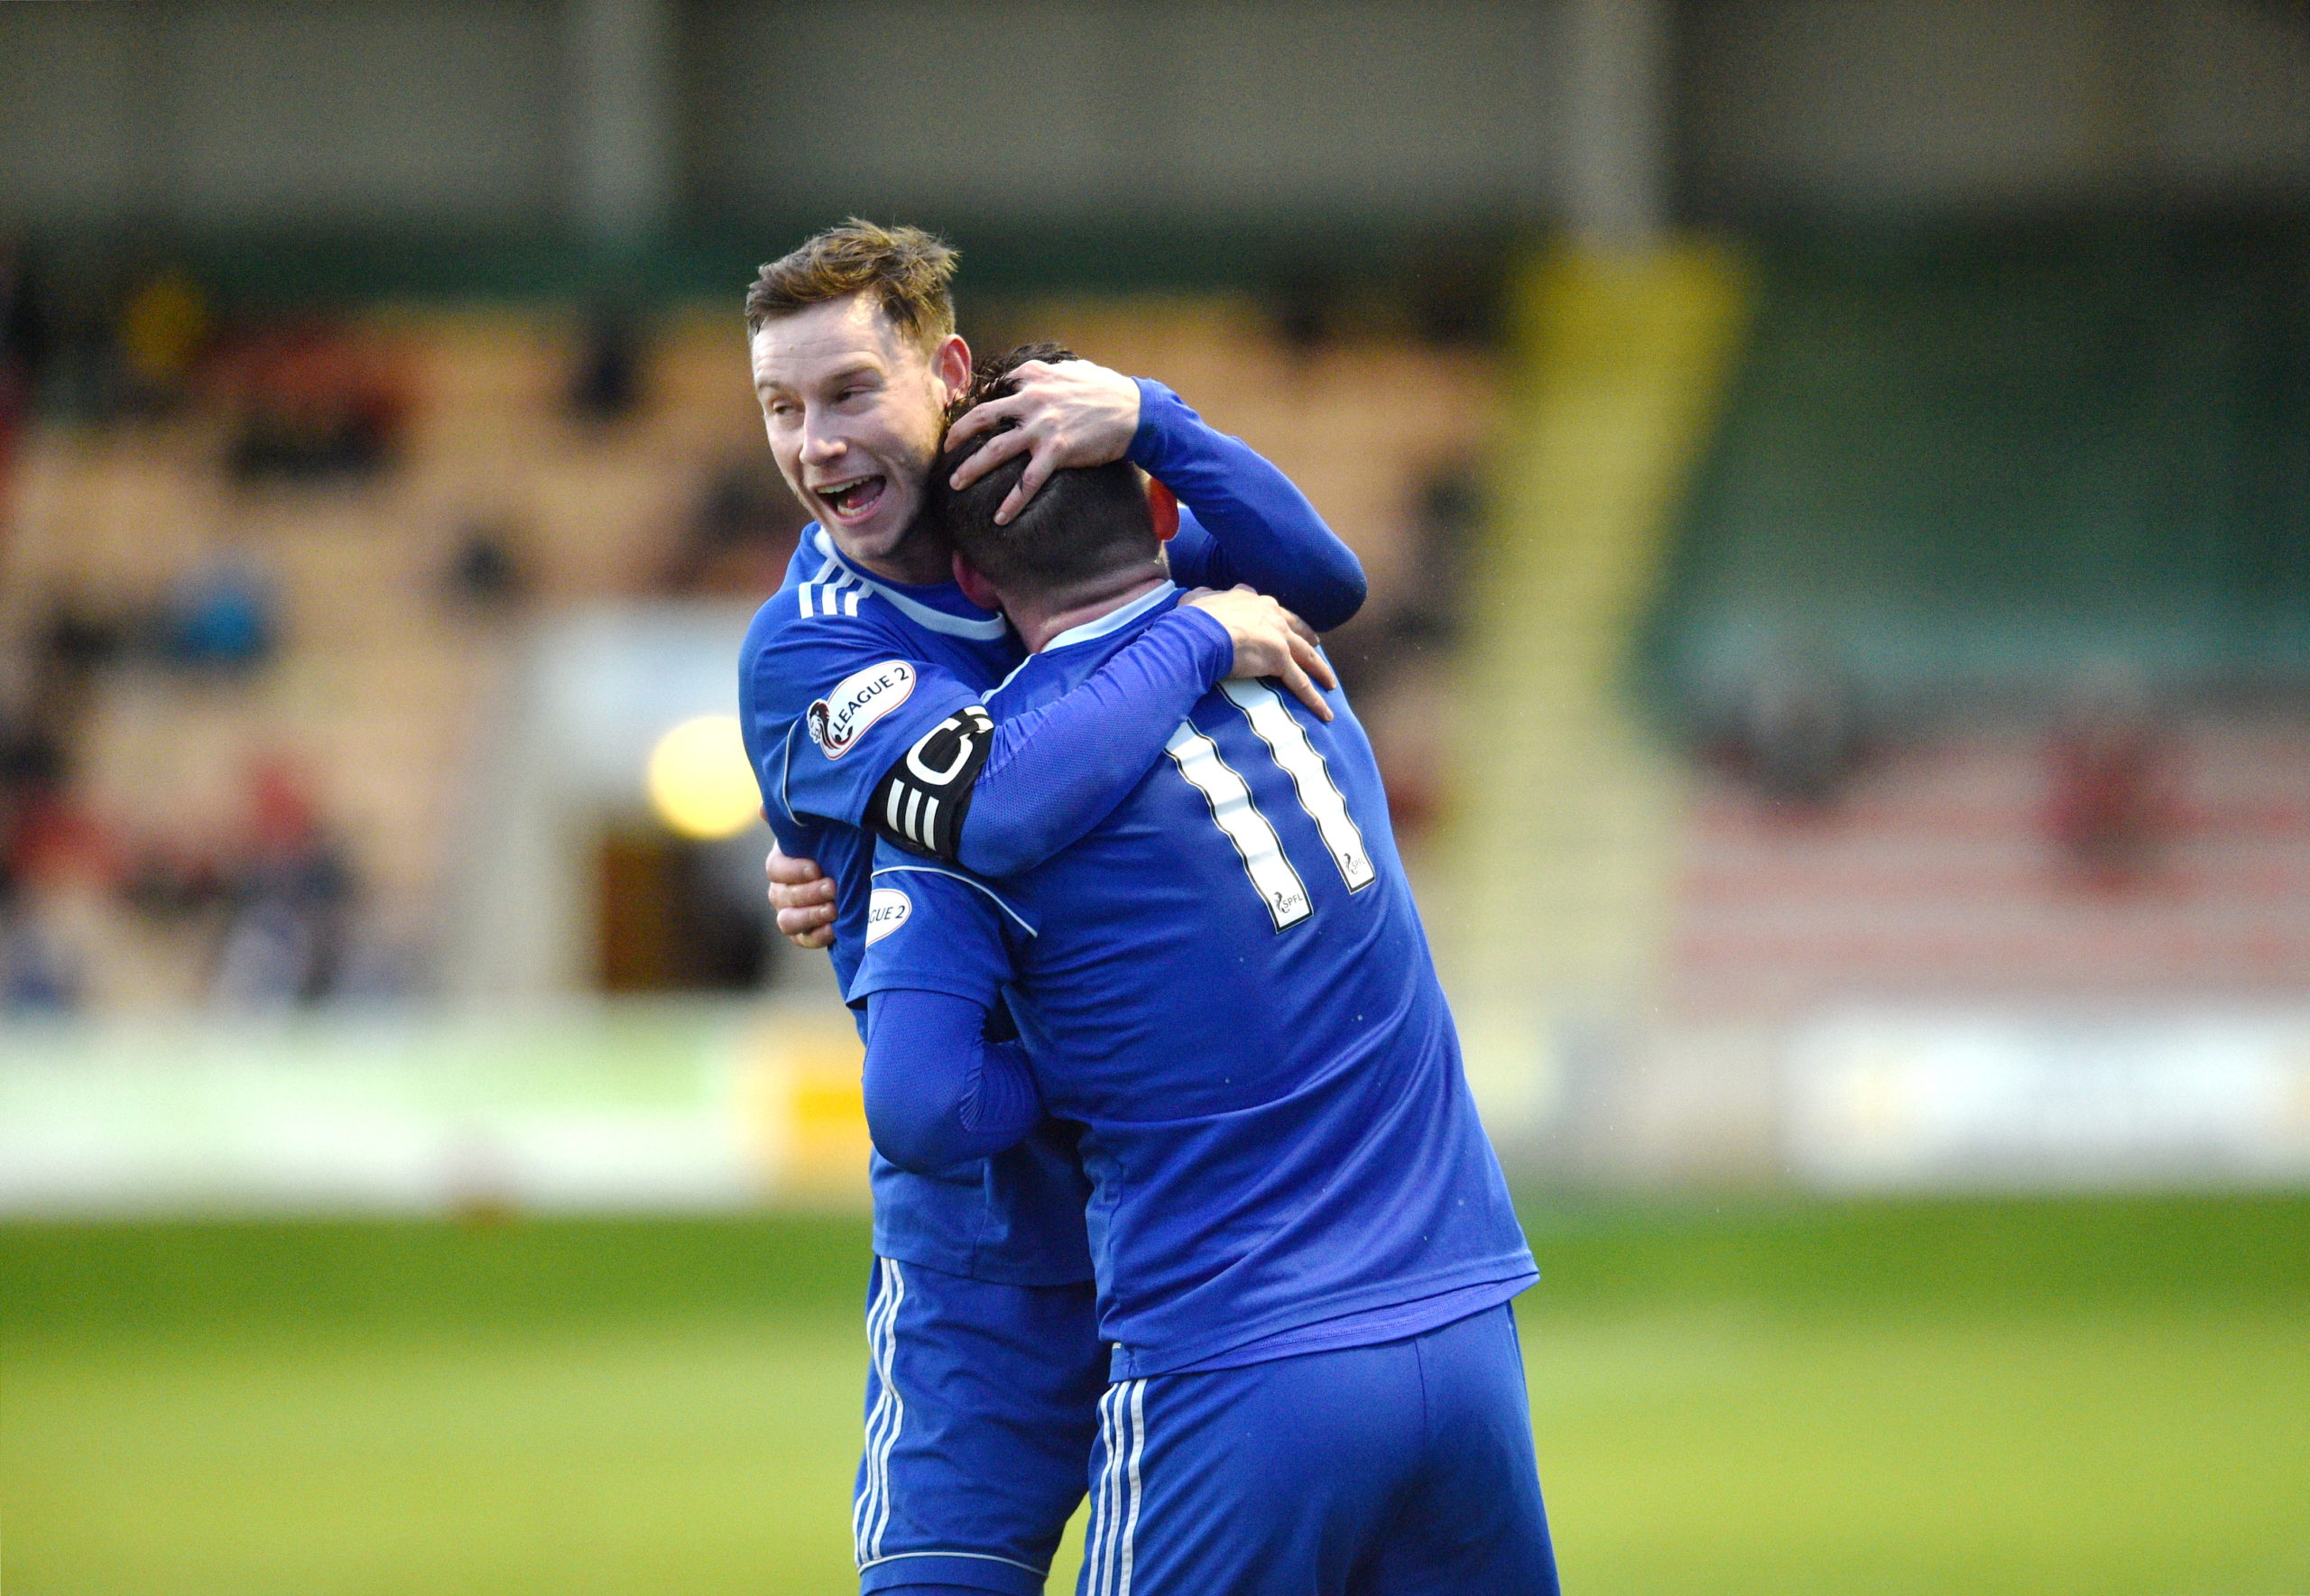 Cove's Jamie Masson celebrating with Mitch Megginson.  Picture by Darrell Benns